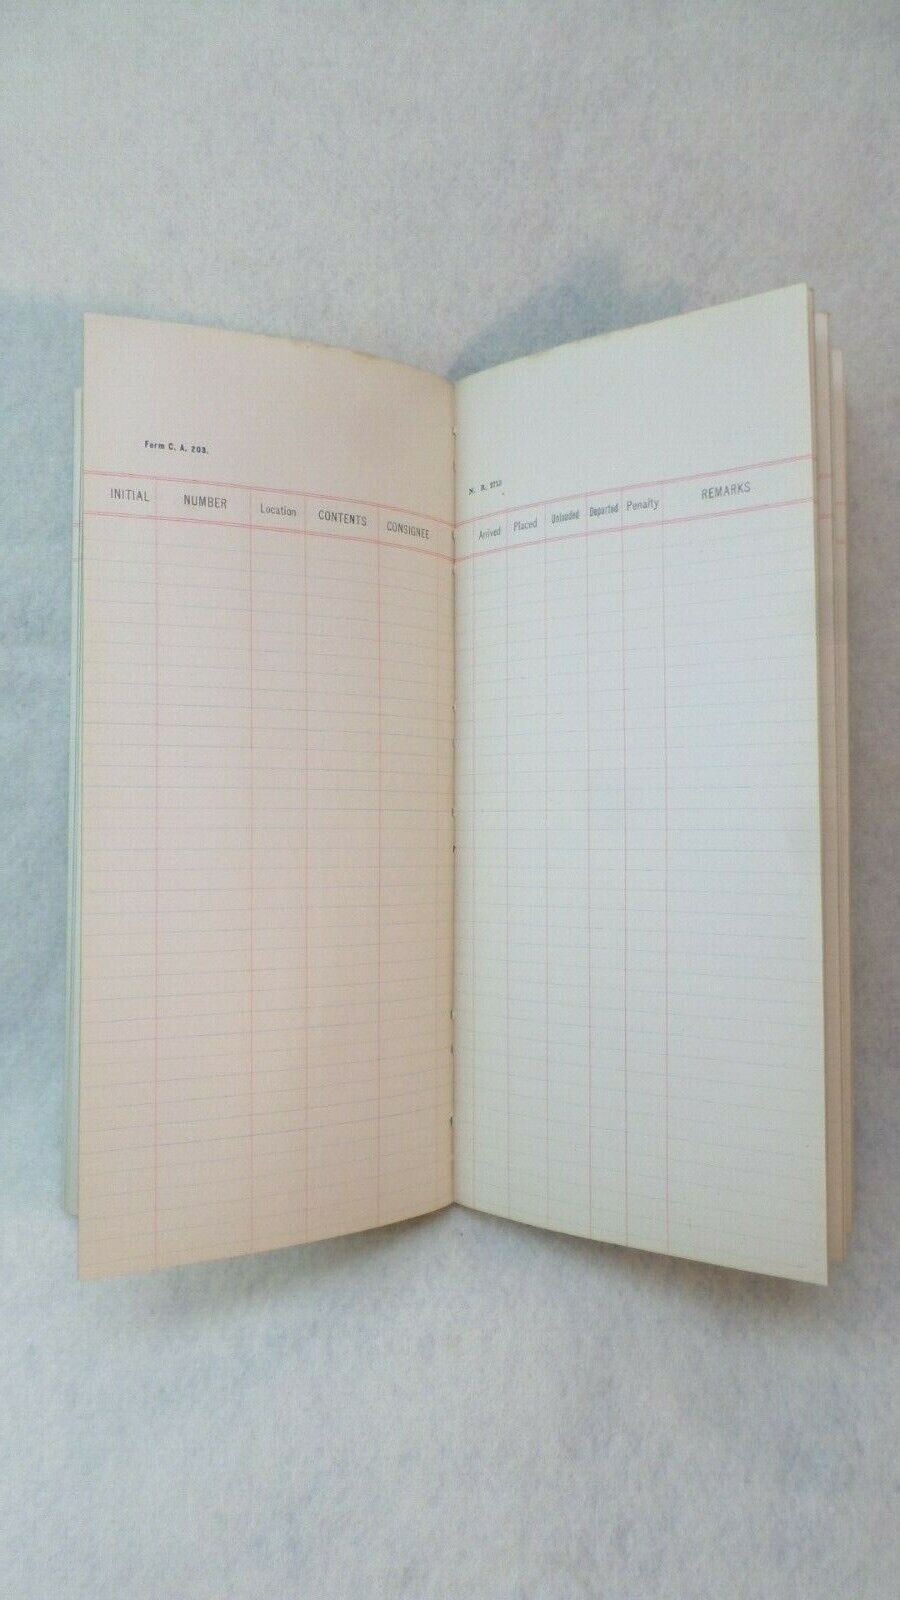 Railroad Yard Check Book - West Shore RR - New York Central